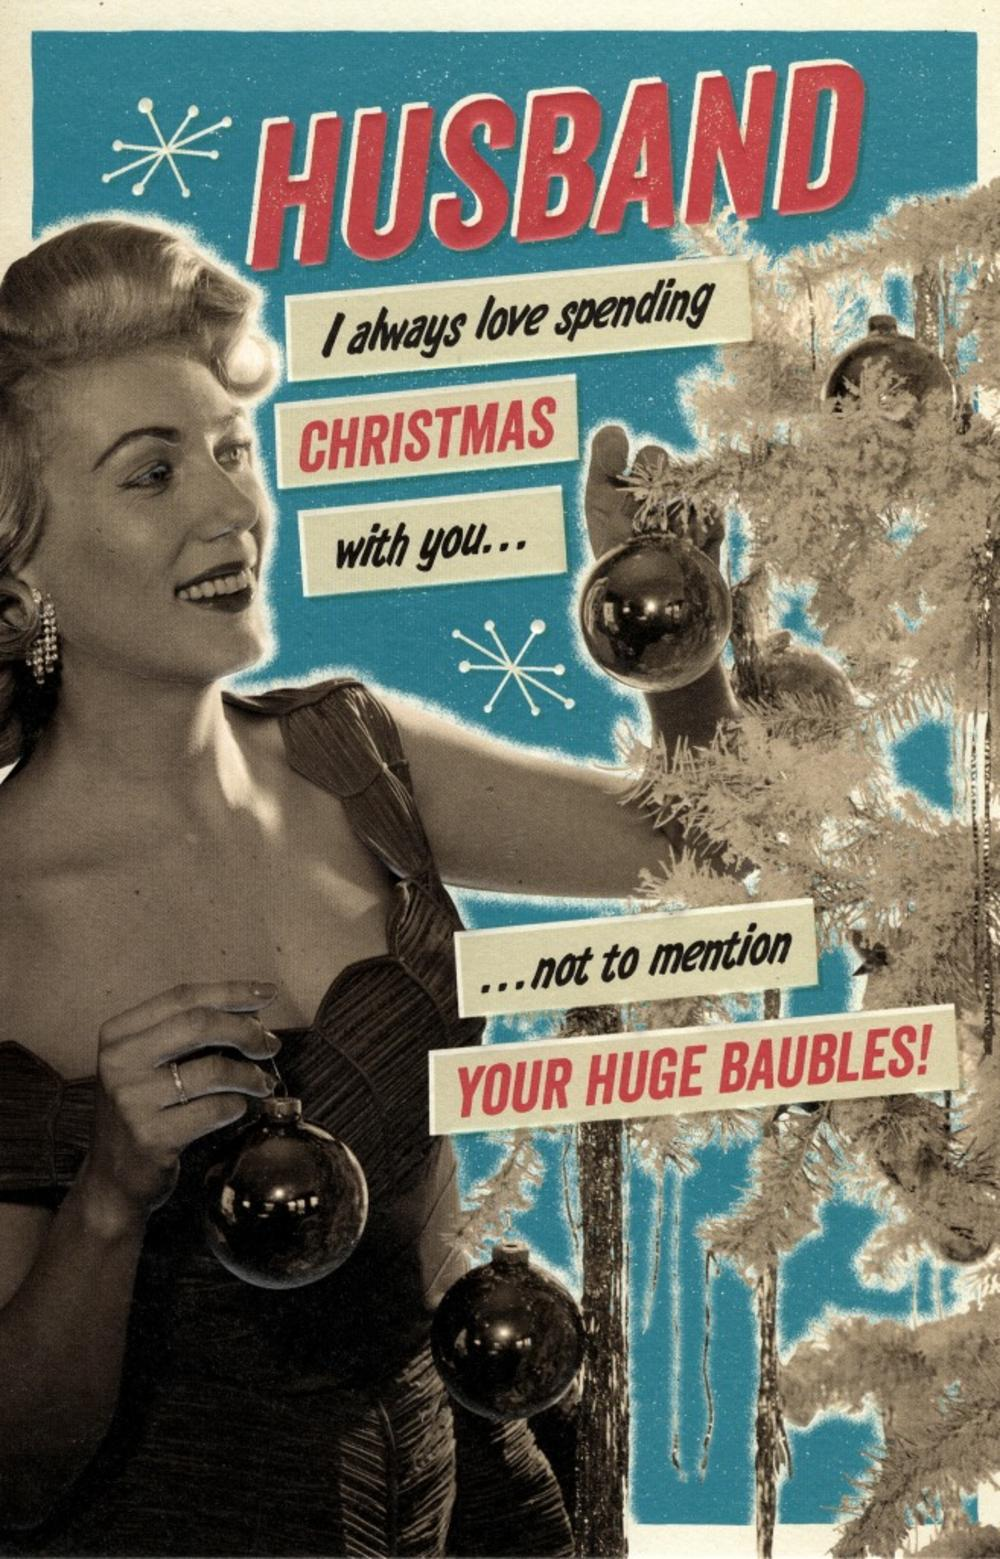 Husband Huge Baubles Retro Humour Christmas Greeting Card